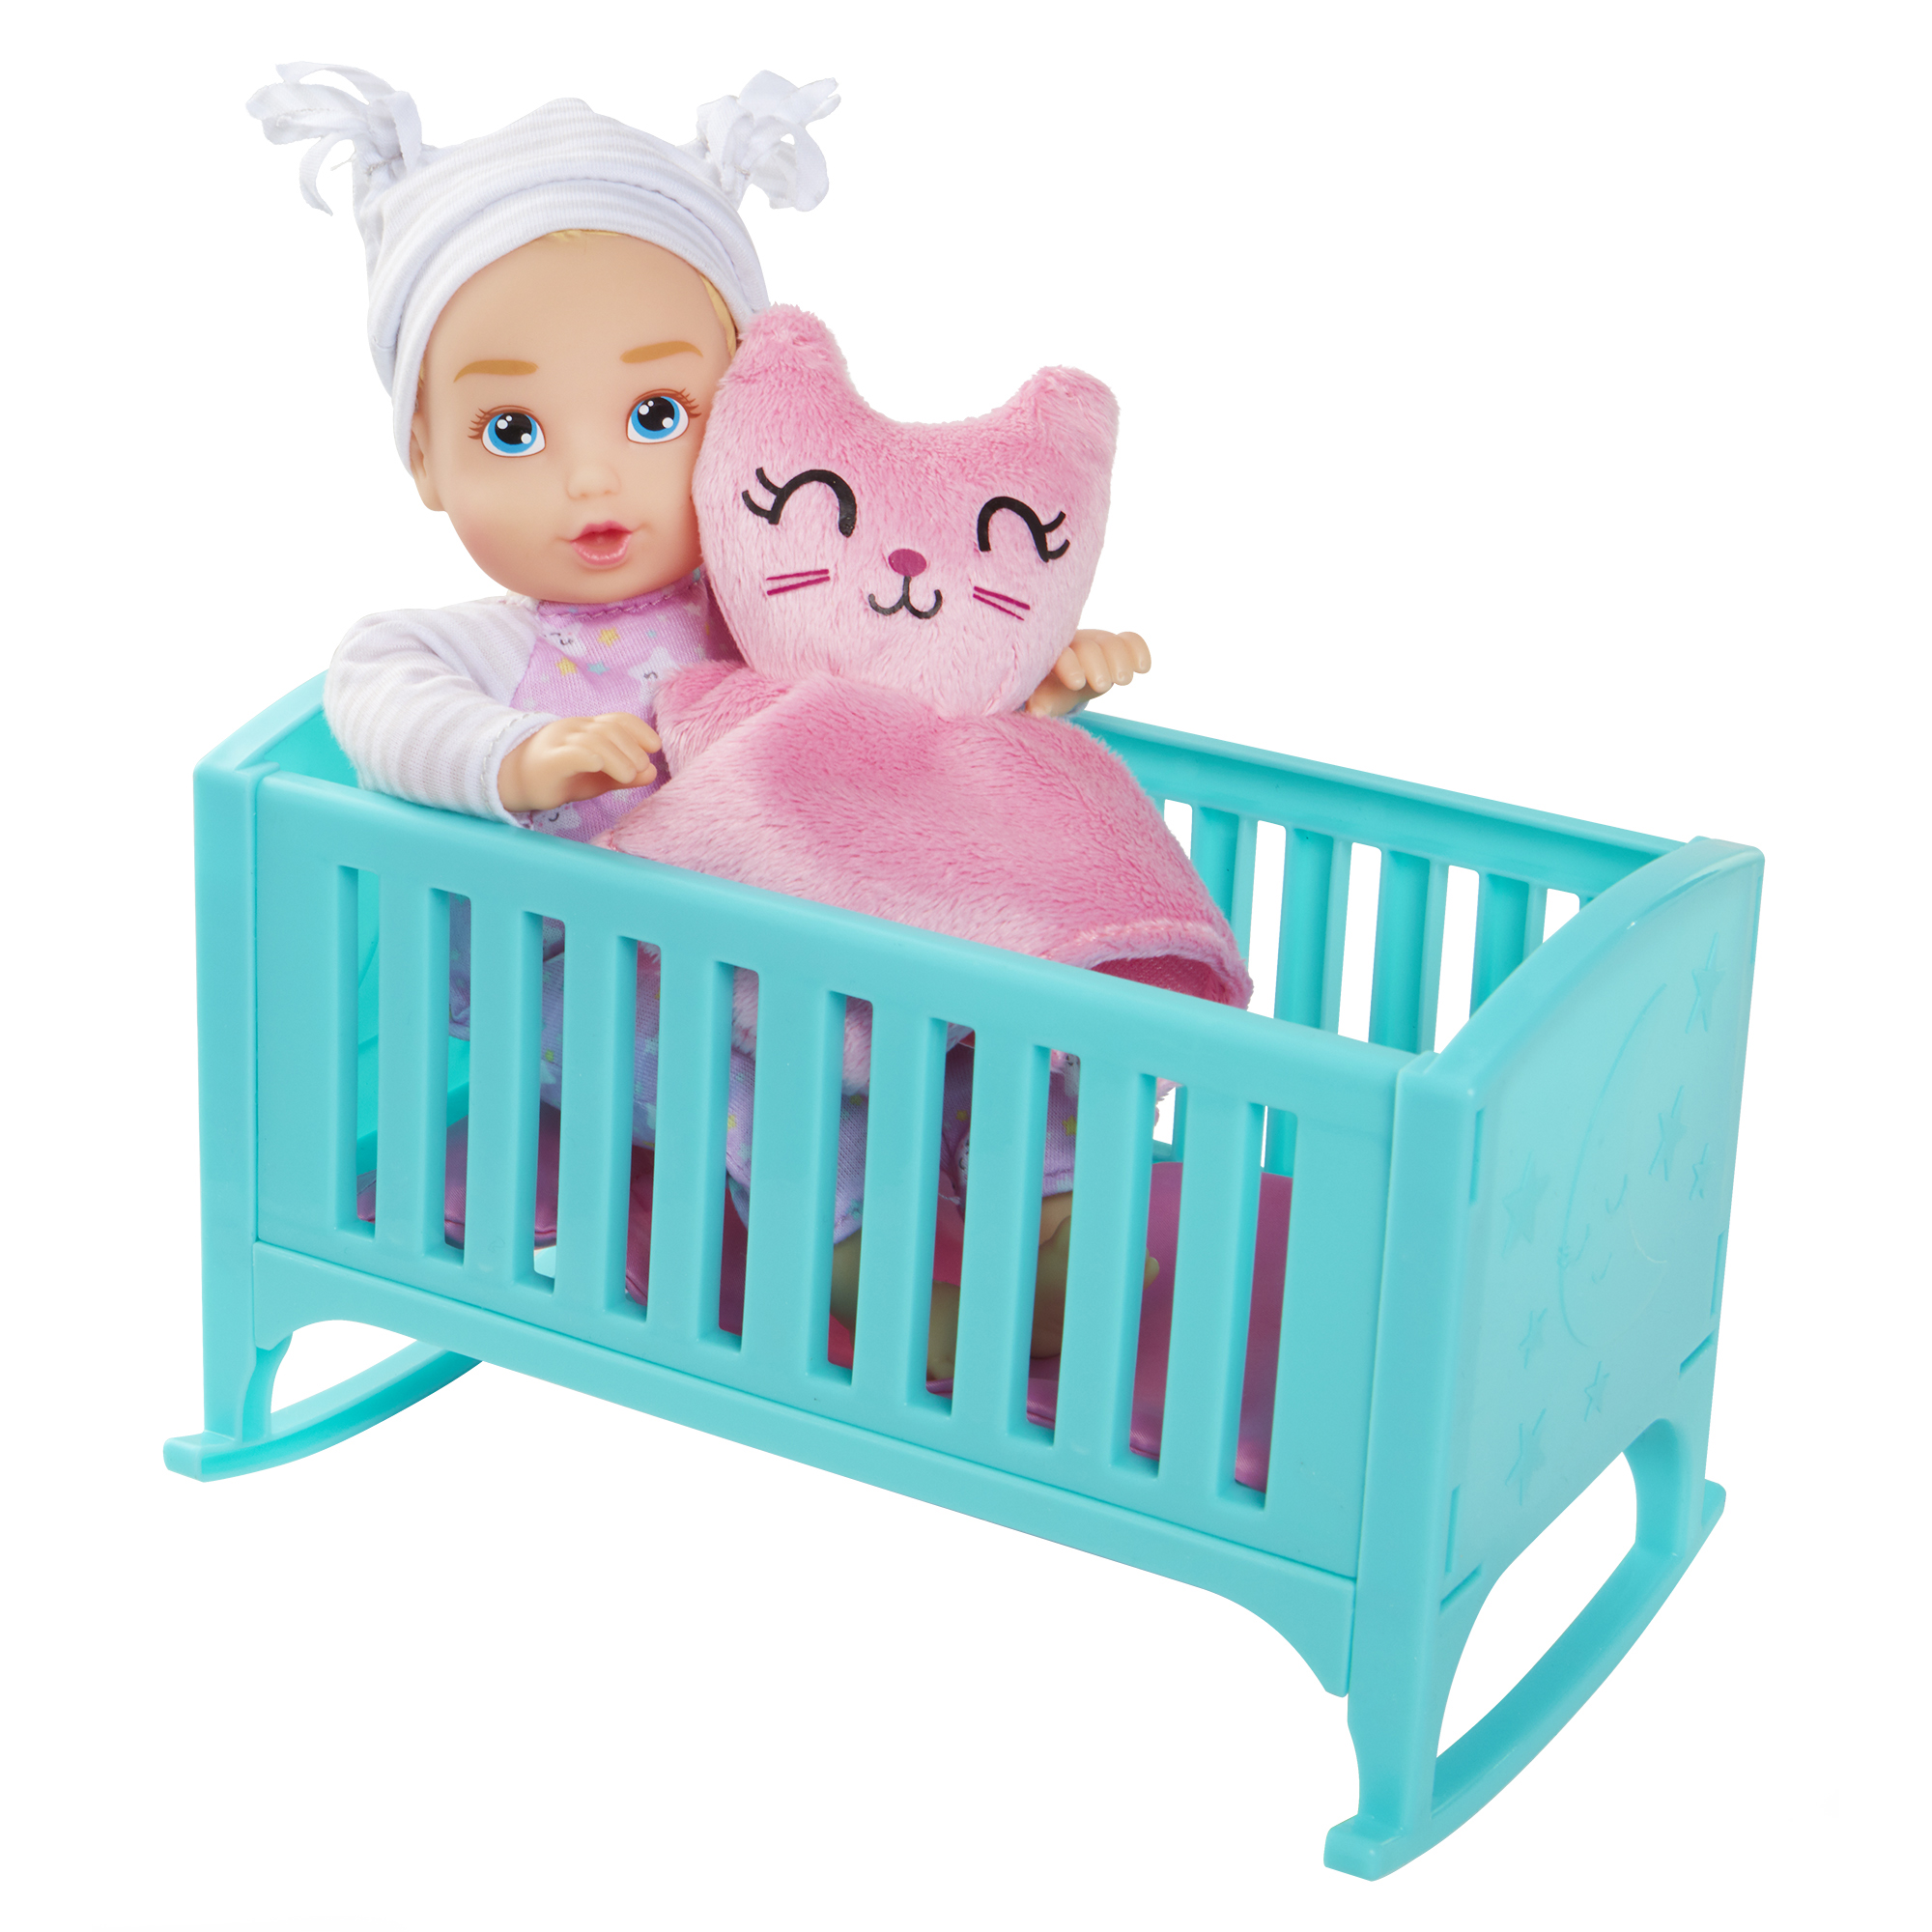 Perfectly Cute Baby Night Night Playset With 8 inch My Lil Baby Girl Doll